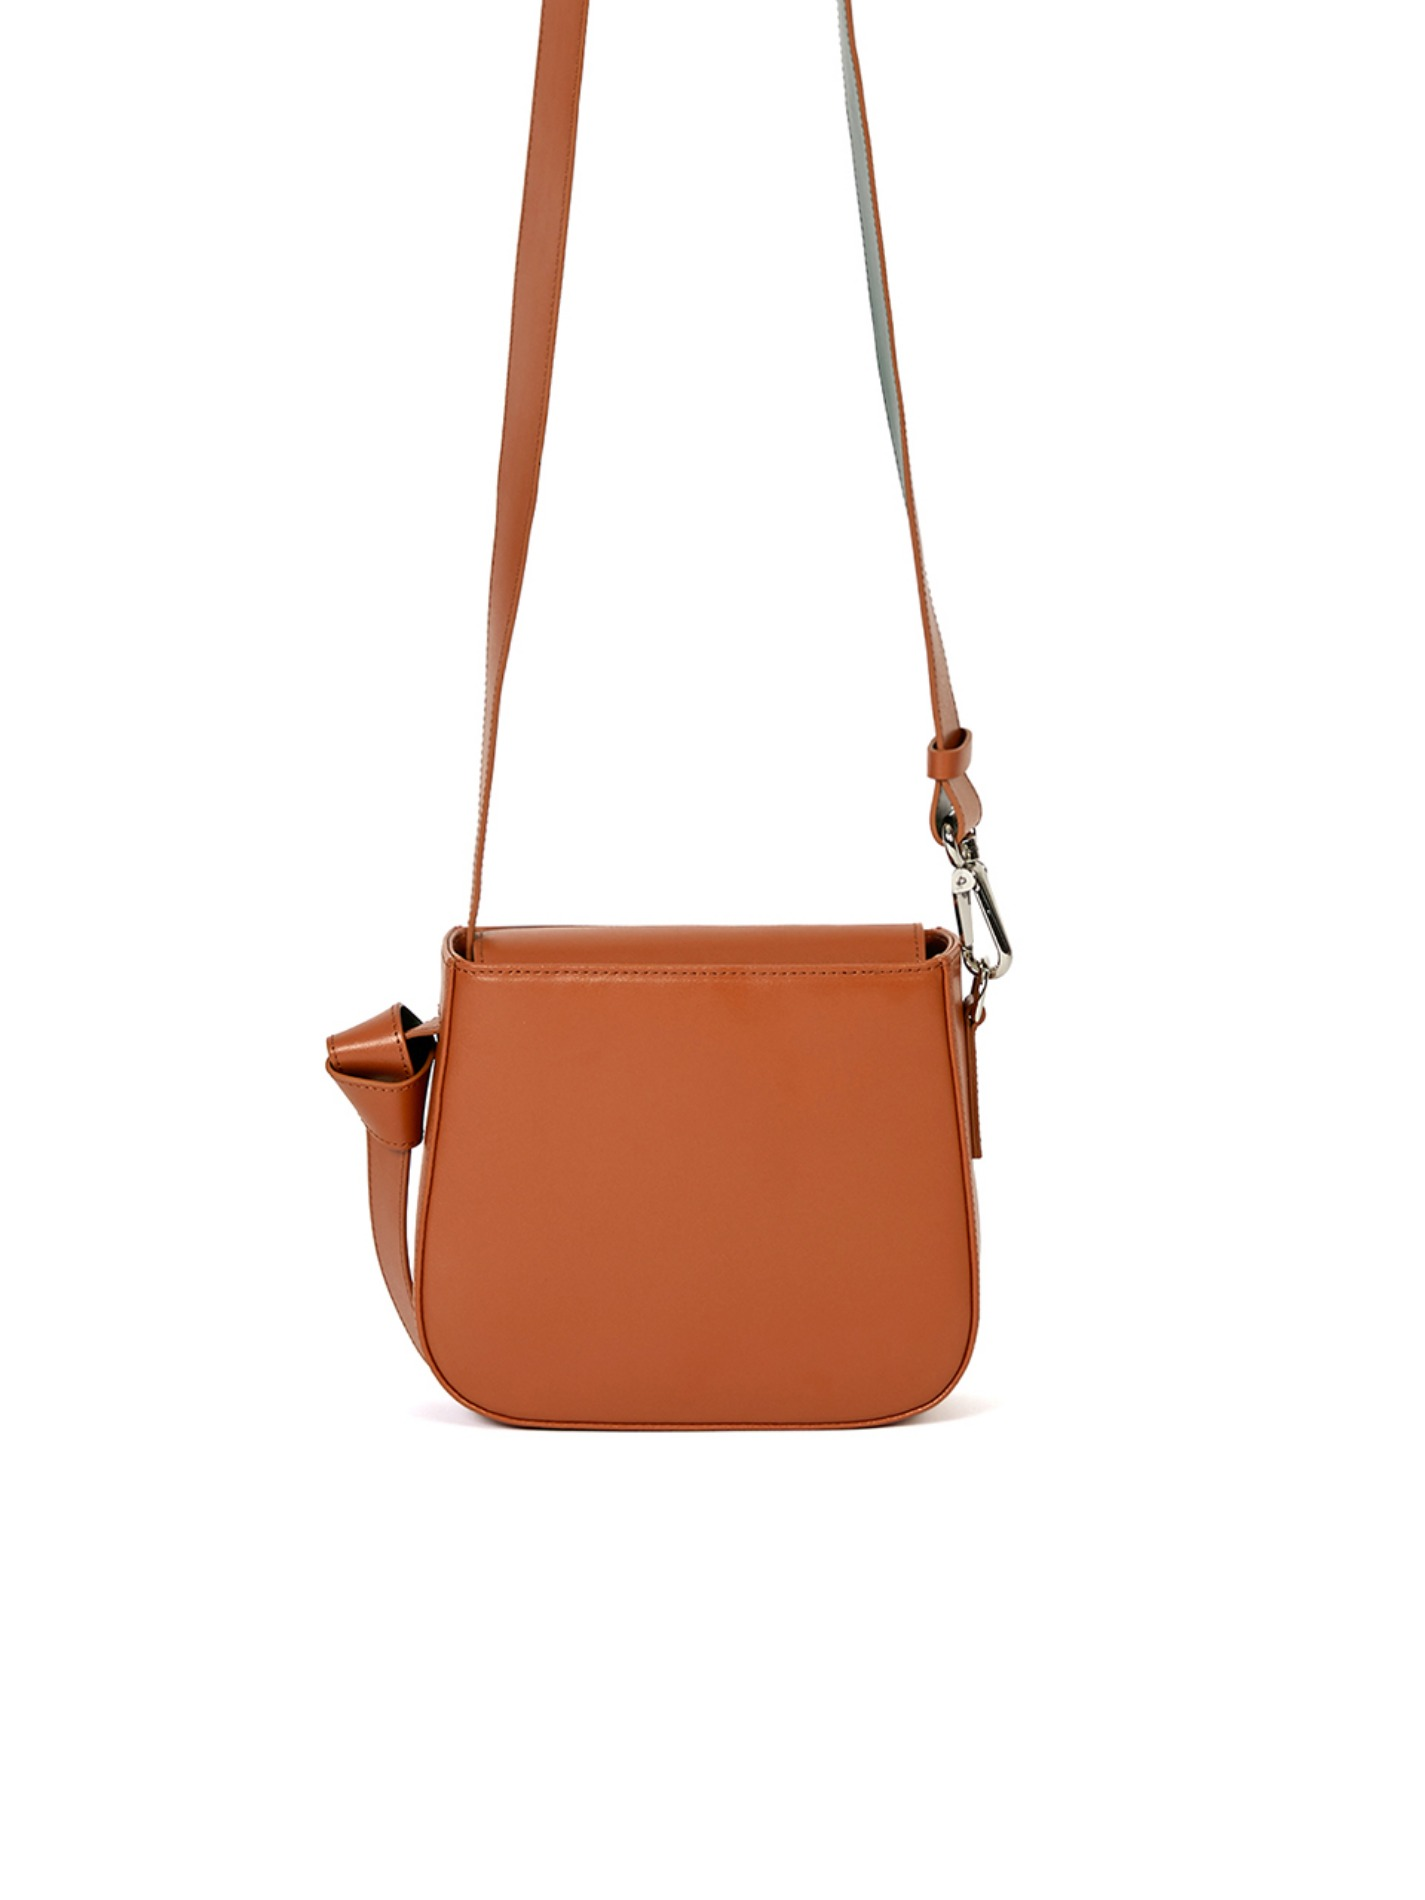 [SALE] COLOR BLOCK BAG - MINI CAMEL